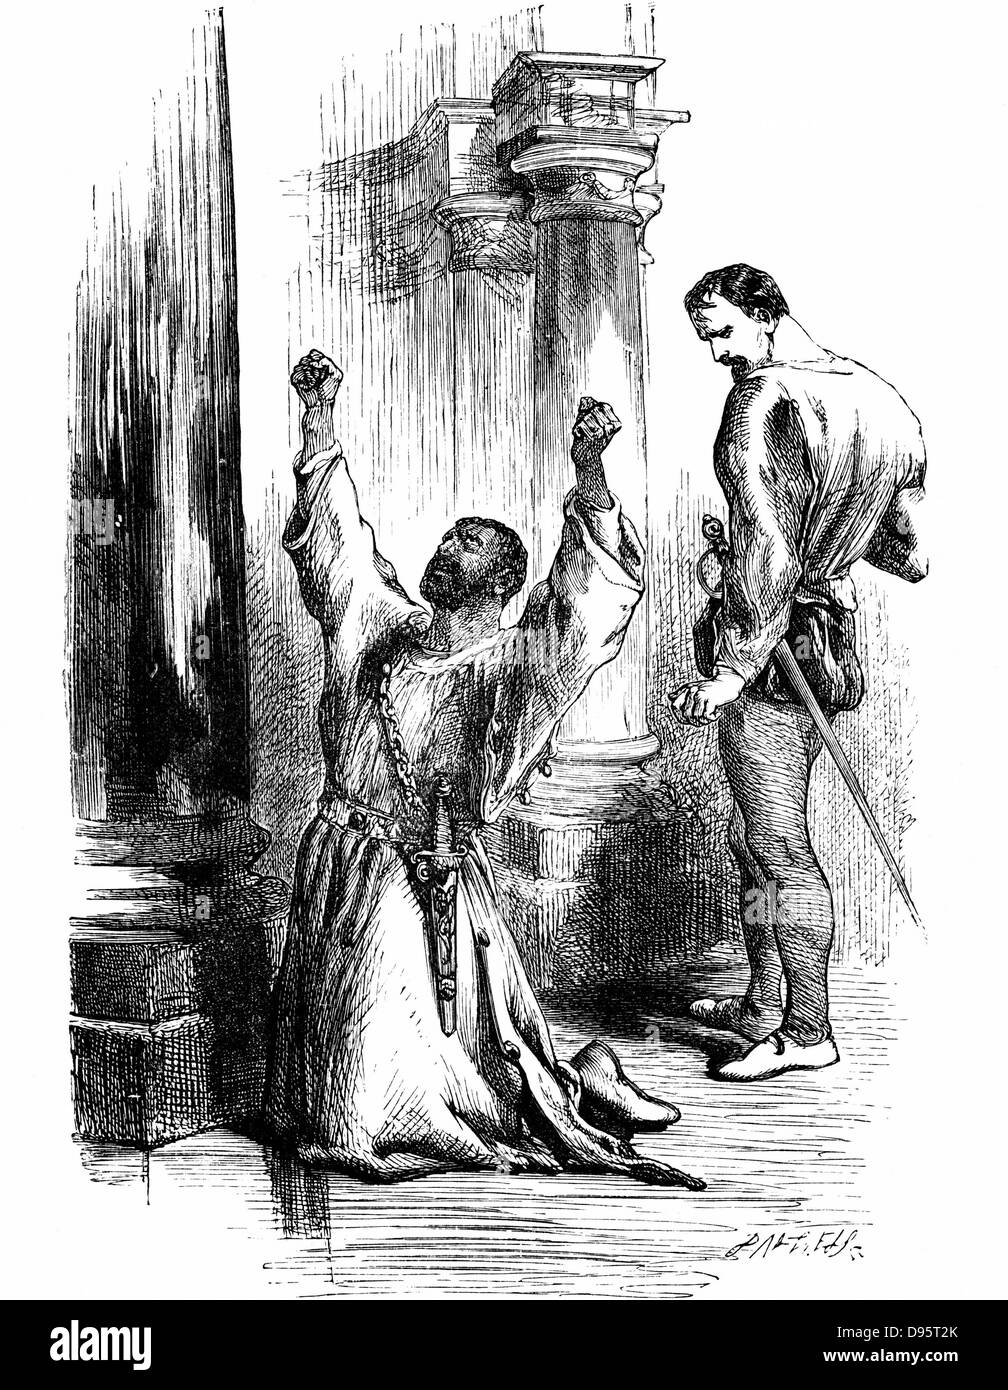 the preventible ending of othello Jealousy in william shakespeare's othello in the play othello, jealousy and envy are prominent themes from the beginning to the end as the play slowly unfolds it is evident that jealousy is the cause of most of the dramatic actions which take place in the duration of the play.